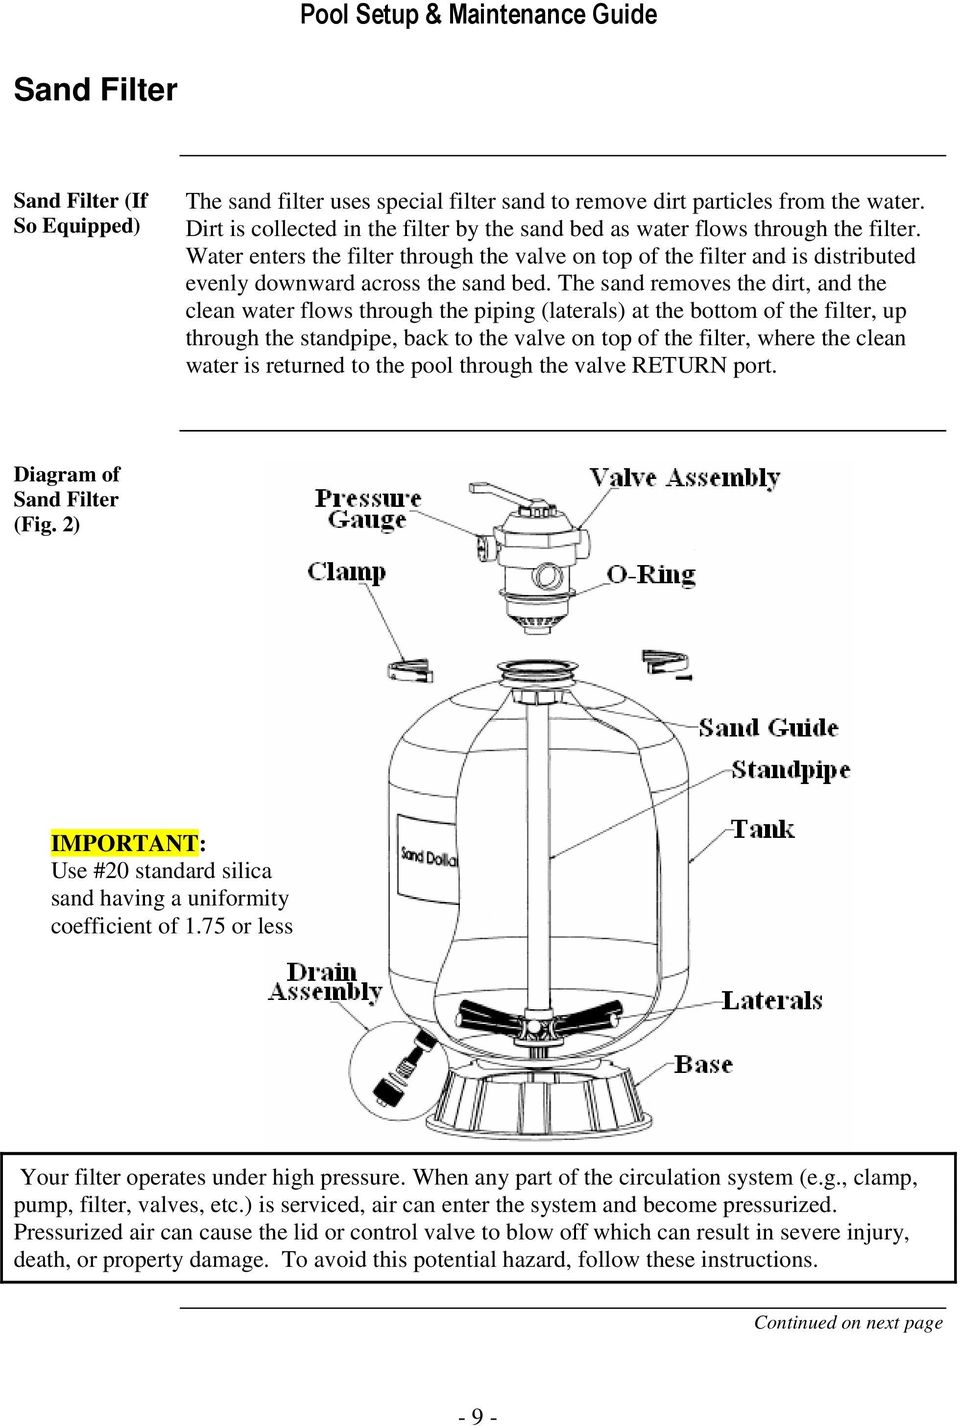 Water enters the filter through the valve on top of the filter and is  distributed evenly